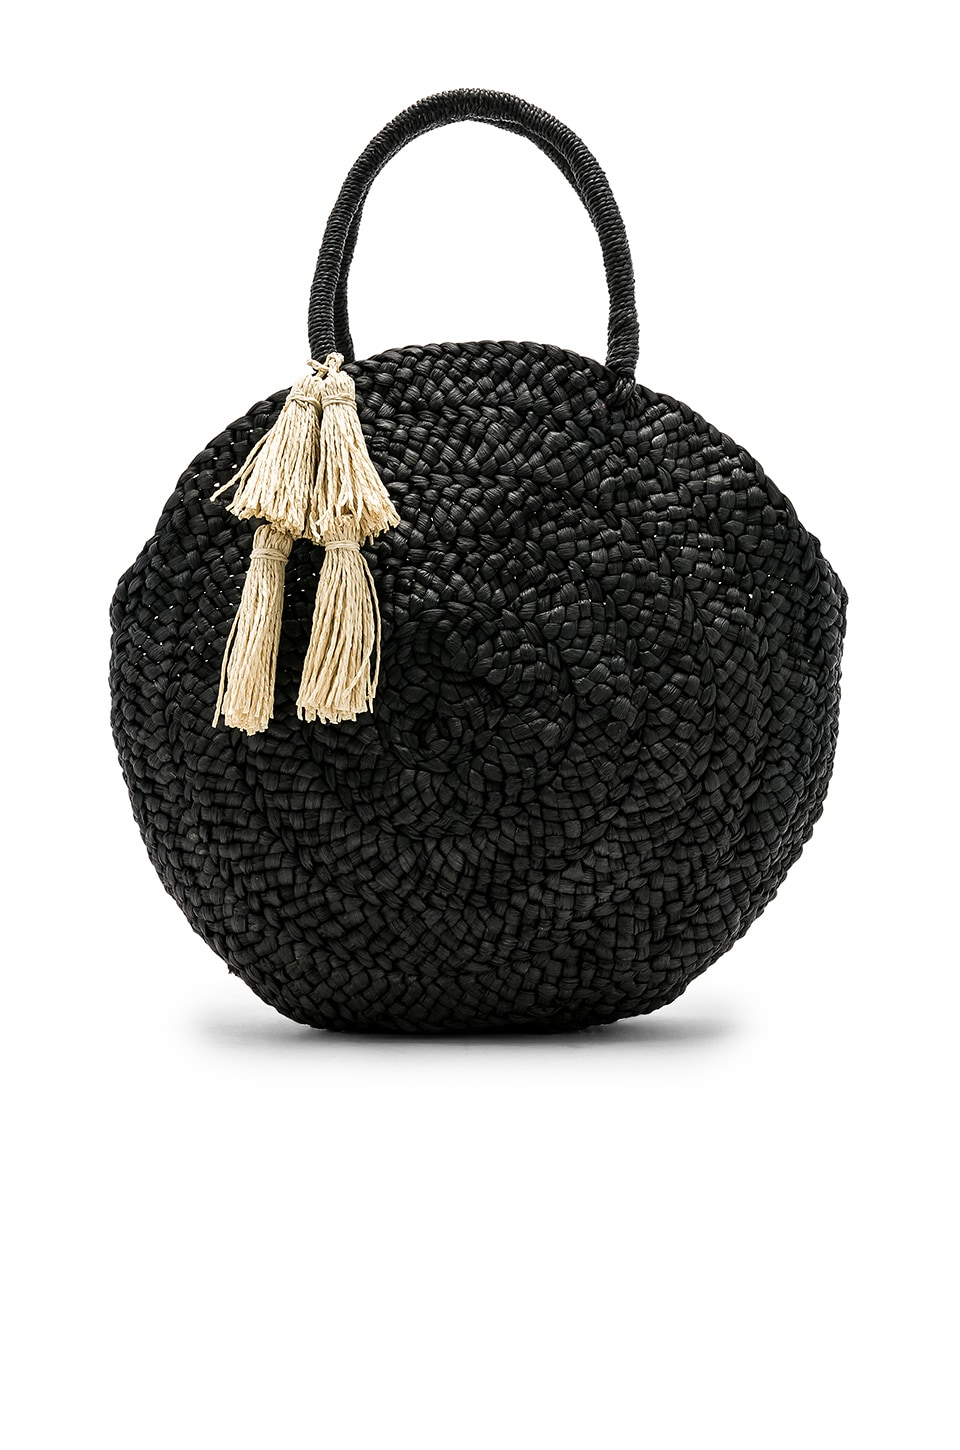 L*SPACE Beach Weekend Bag in Black